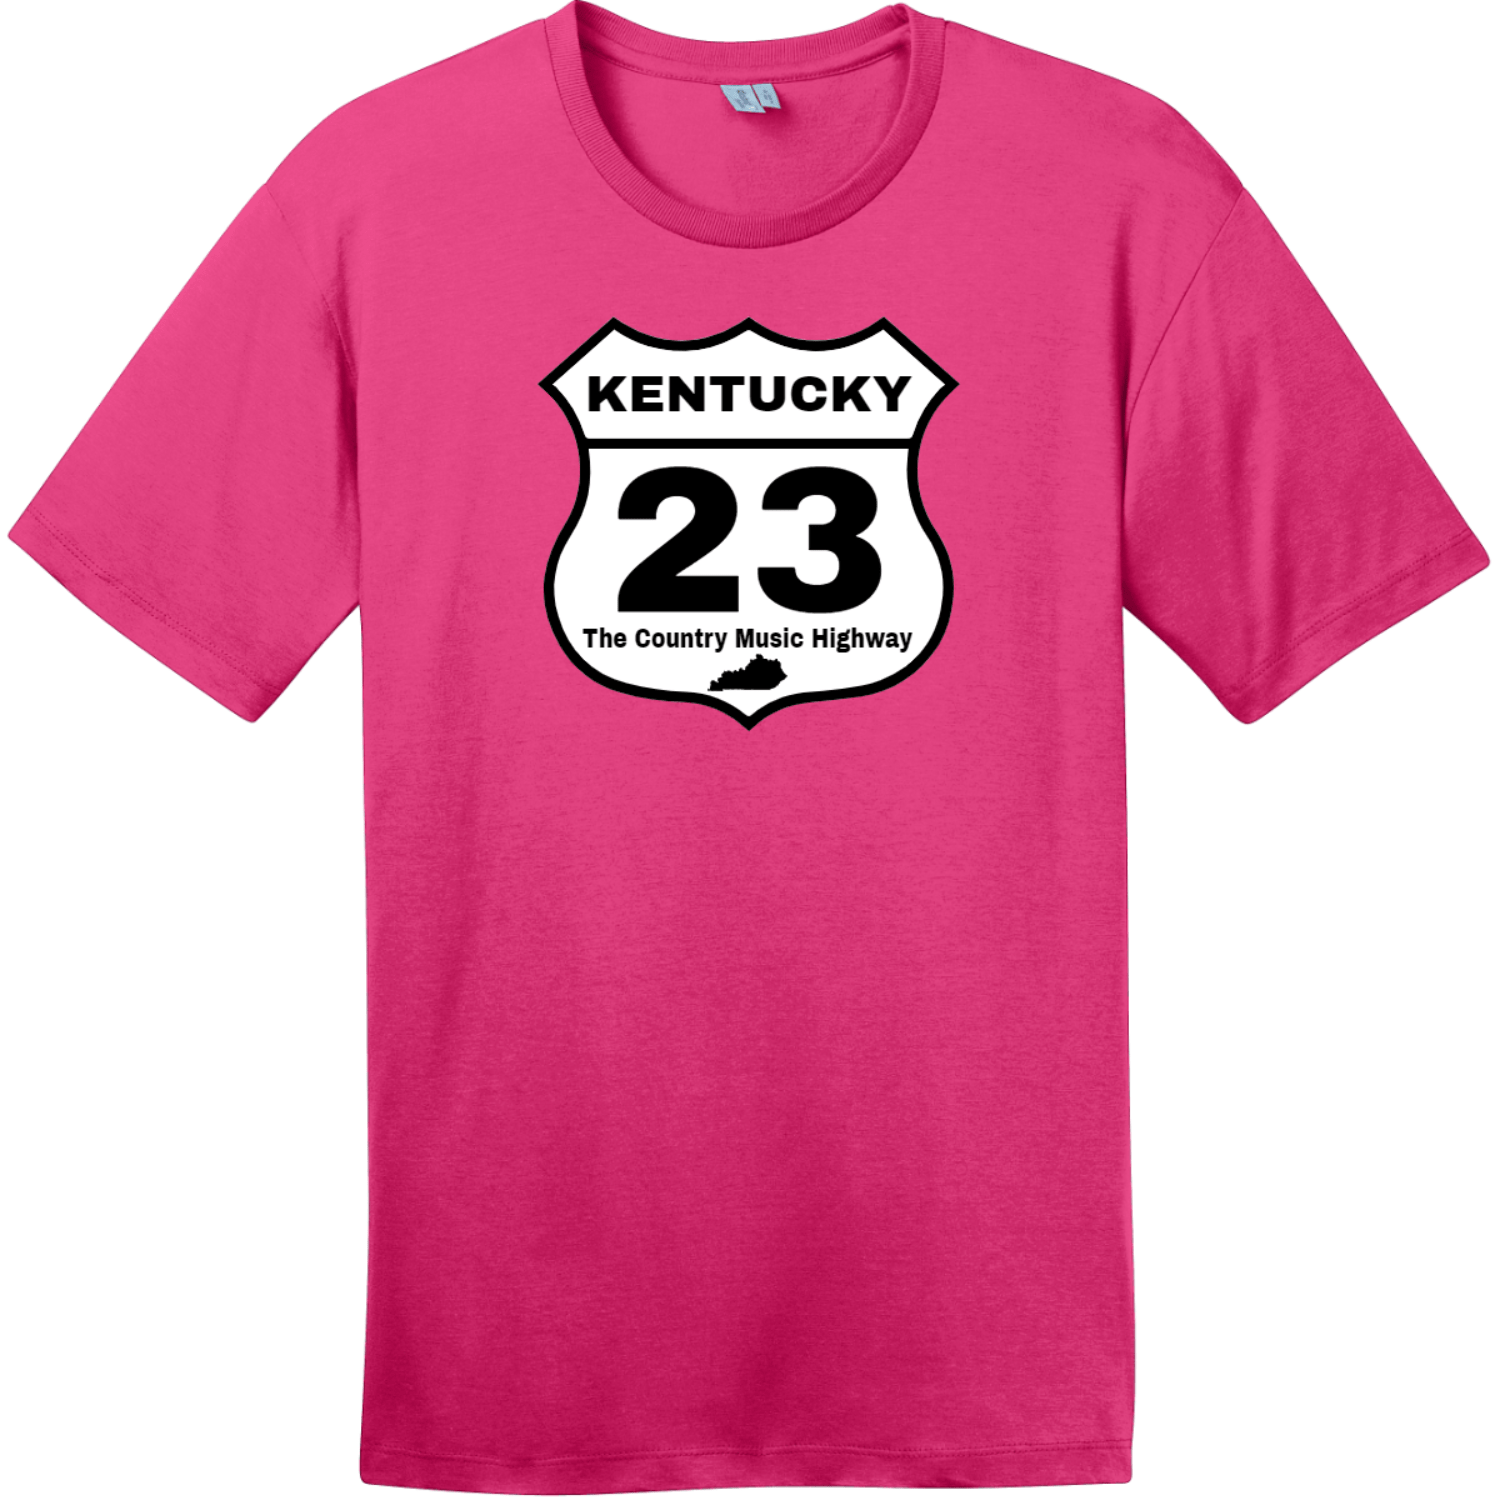 Kentucky 23 Country Music Highway T-Shirt Dark Fuchsia District Perfect Weight Tee DT104